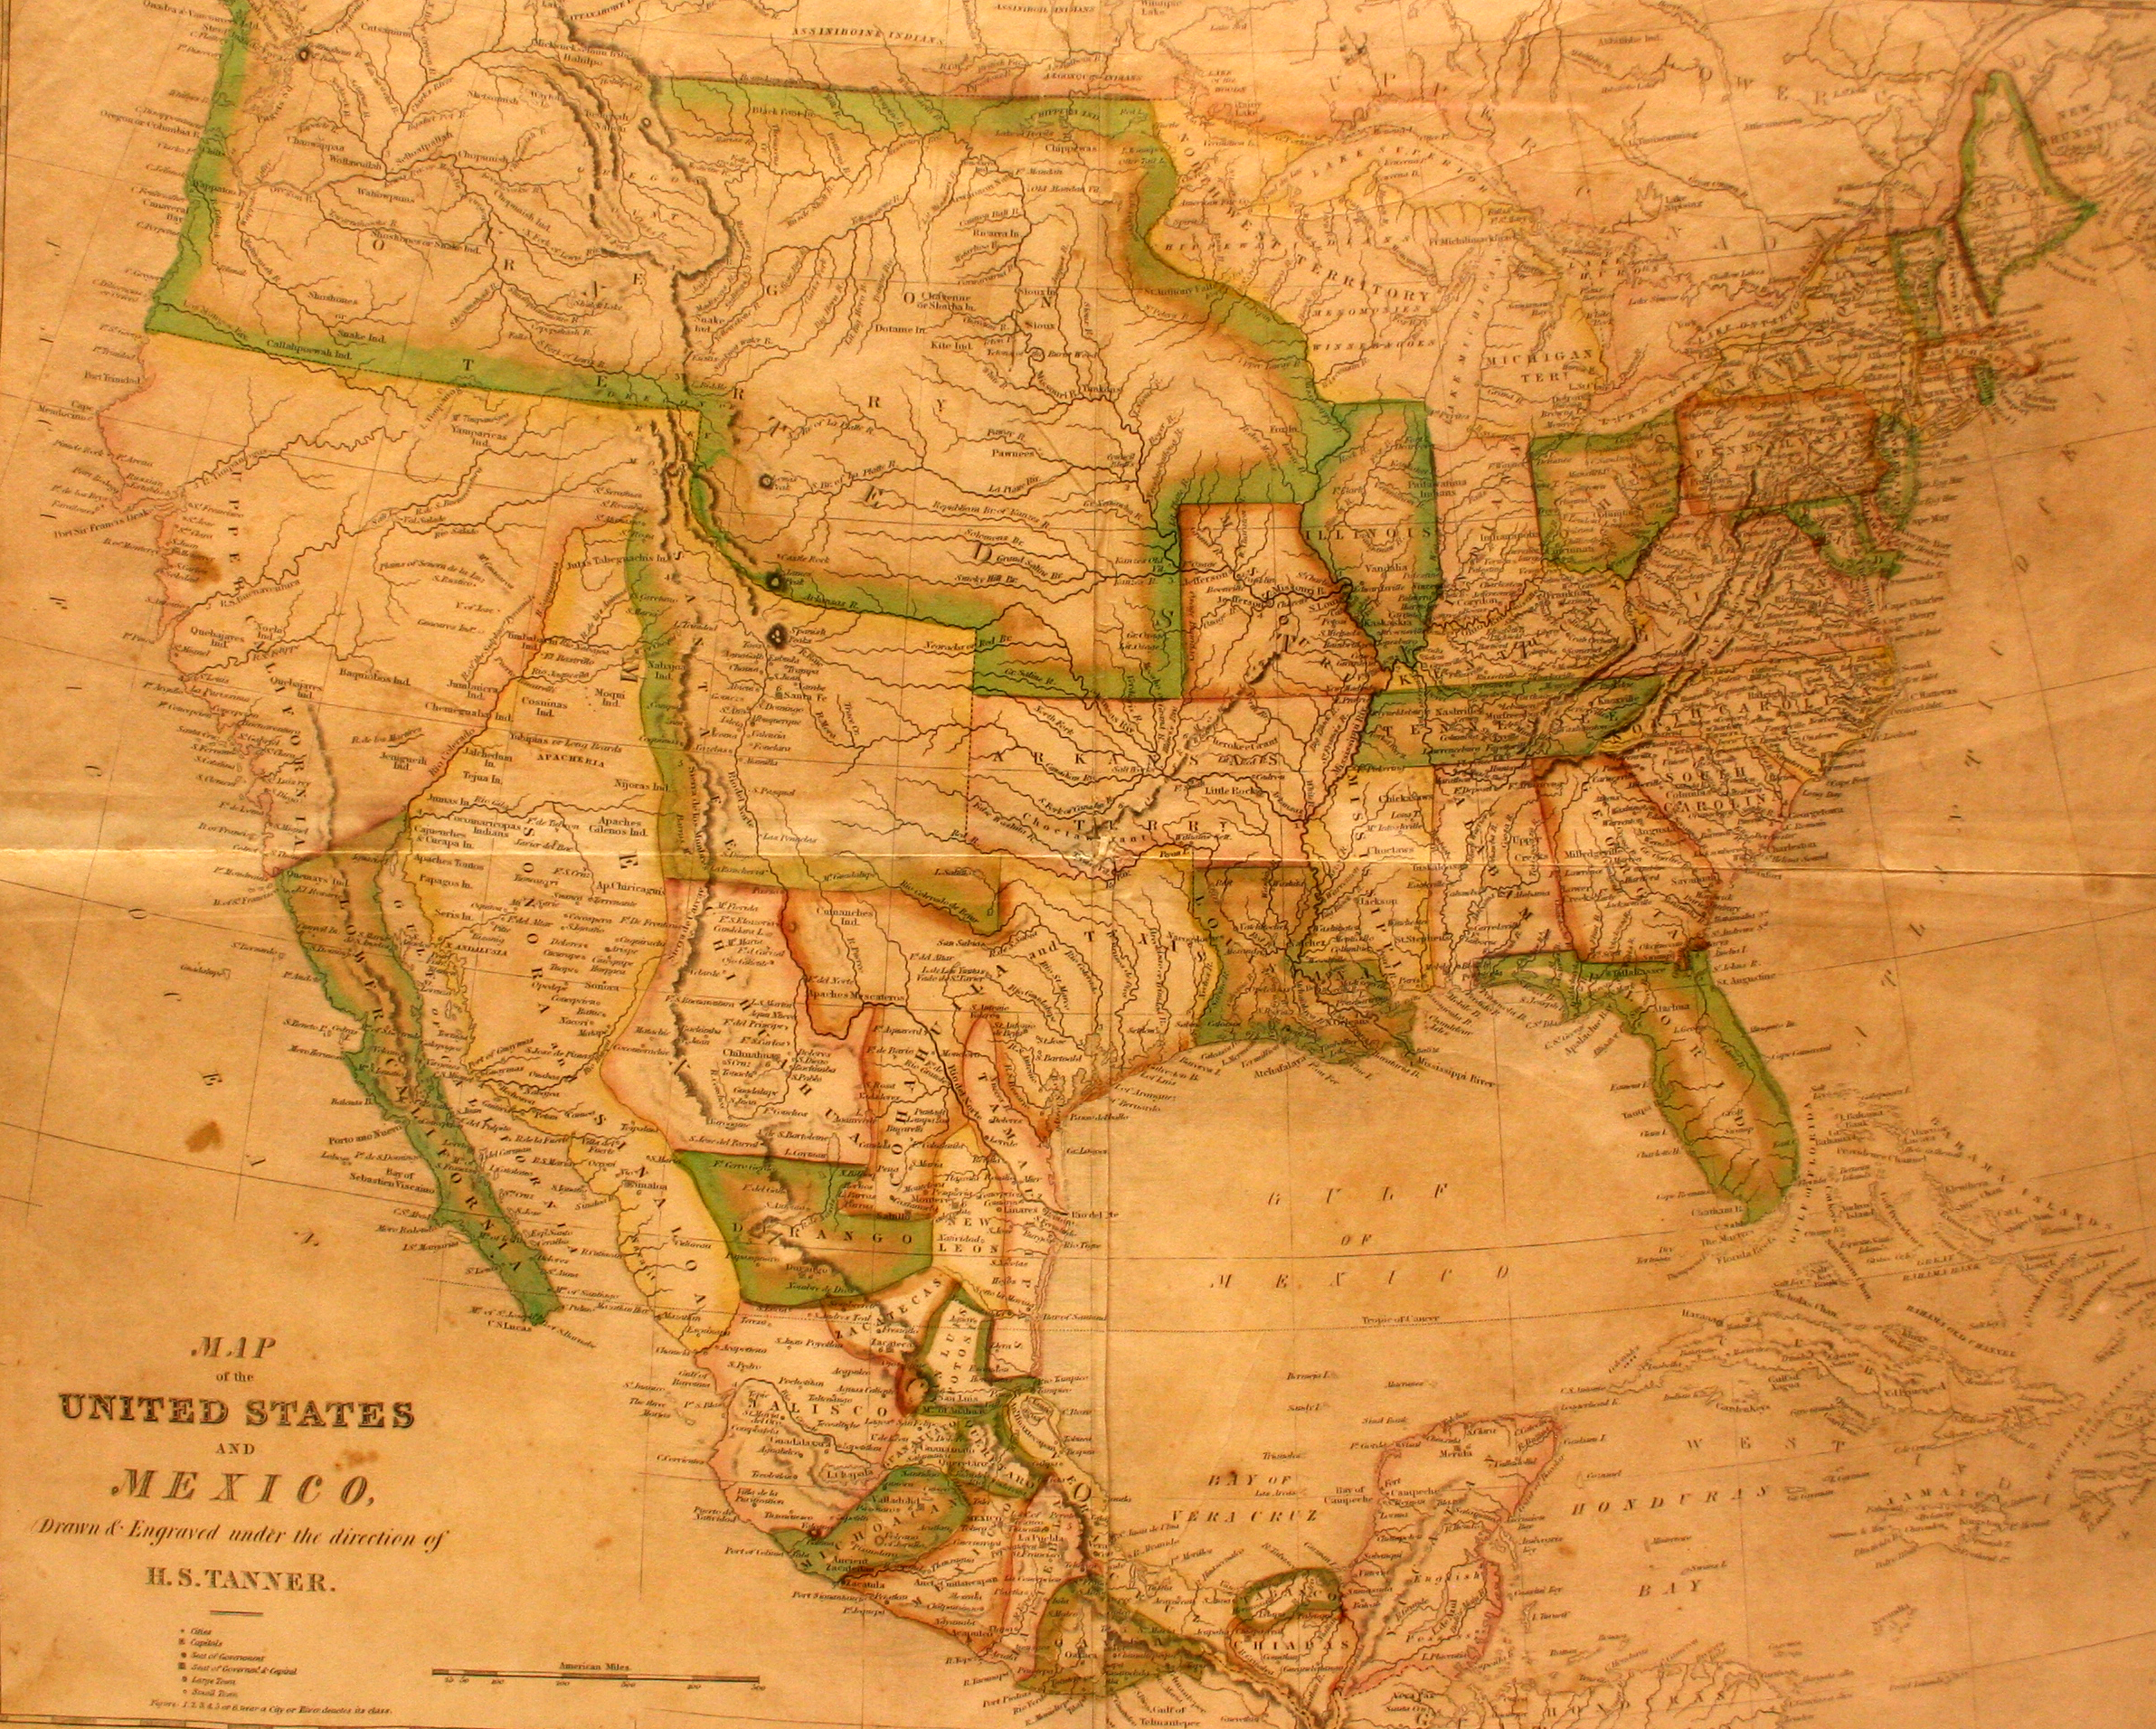 Smileys Geography Atlas Map Of The United States And Mexico - Us map 1824